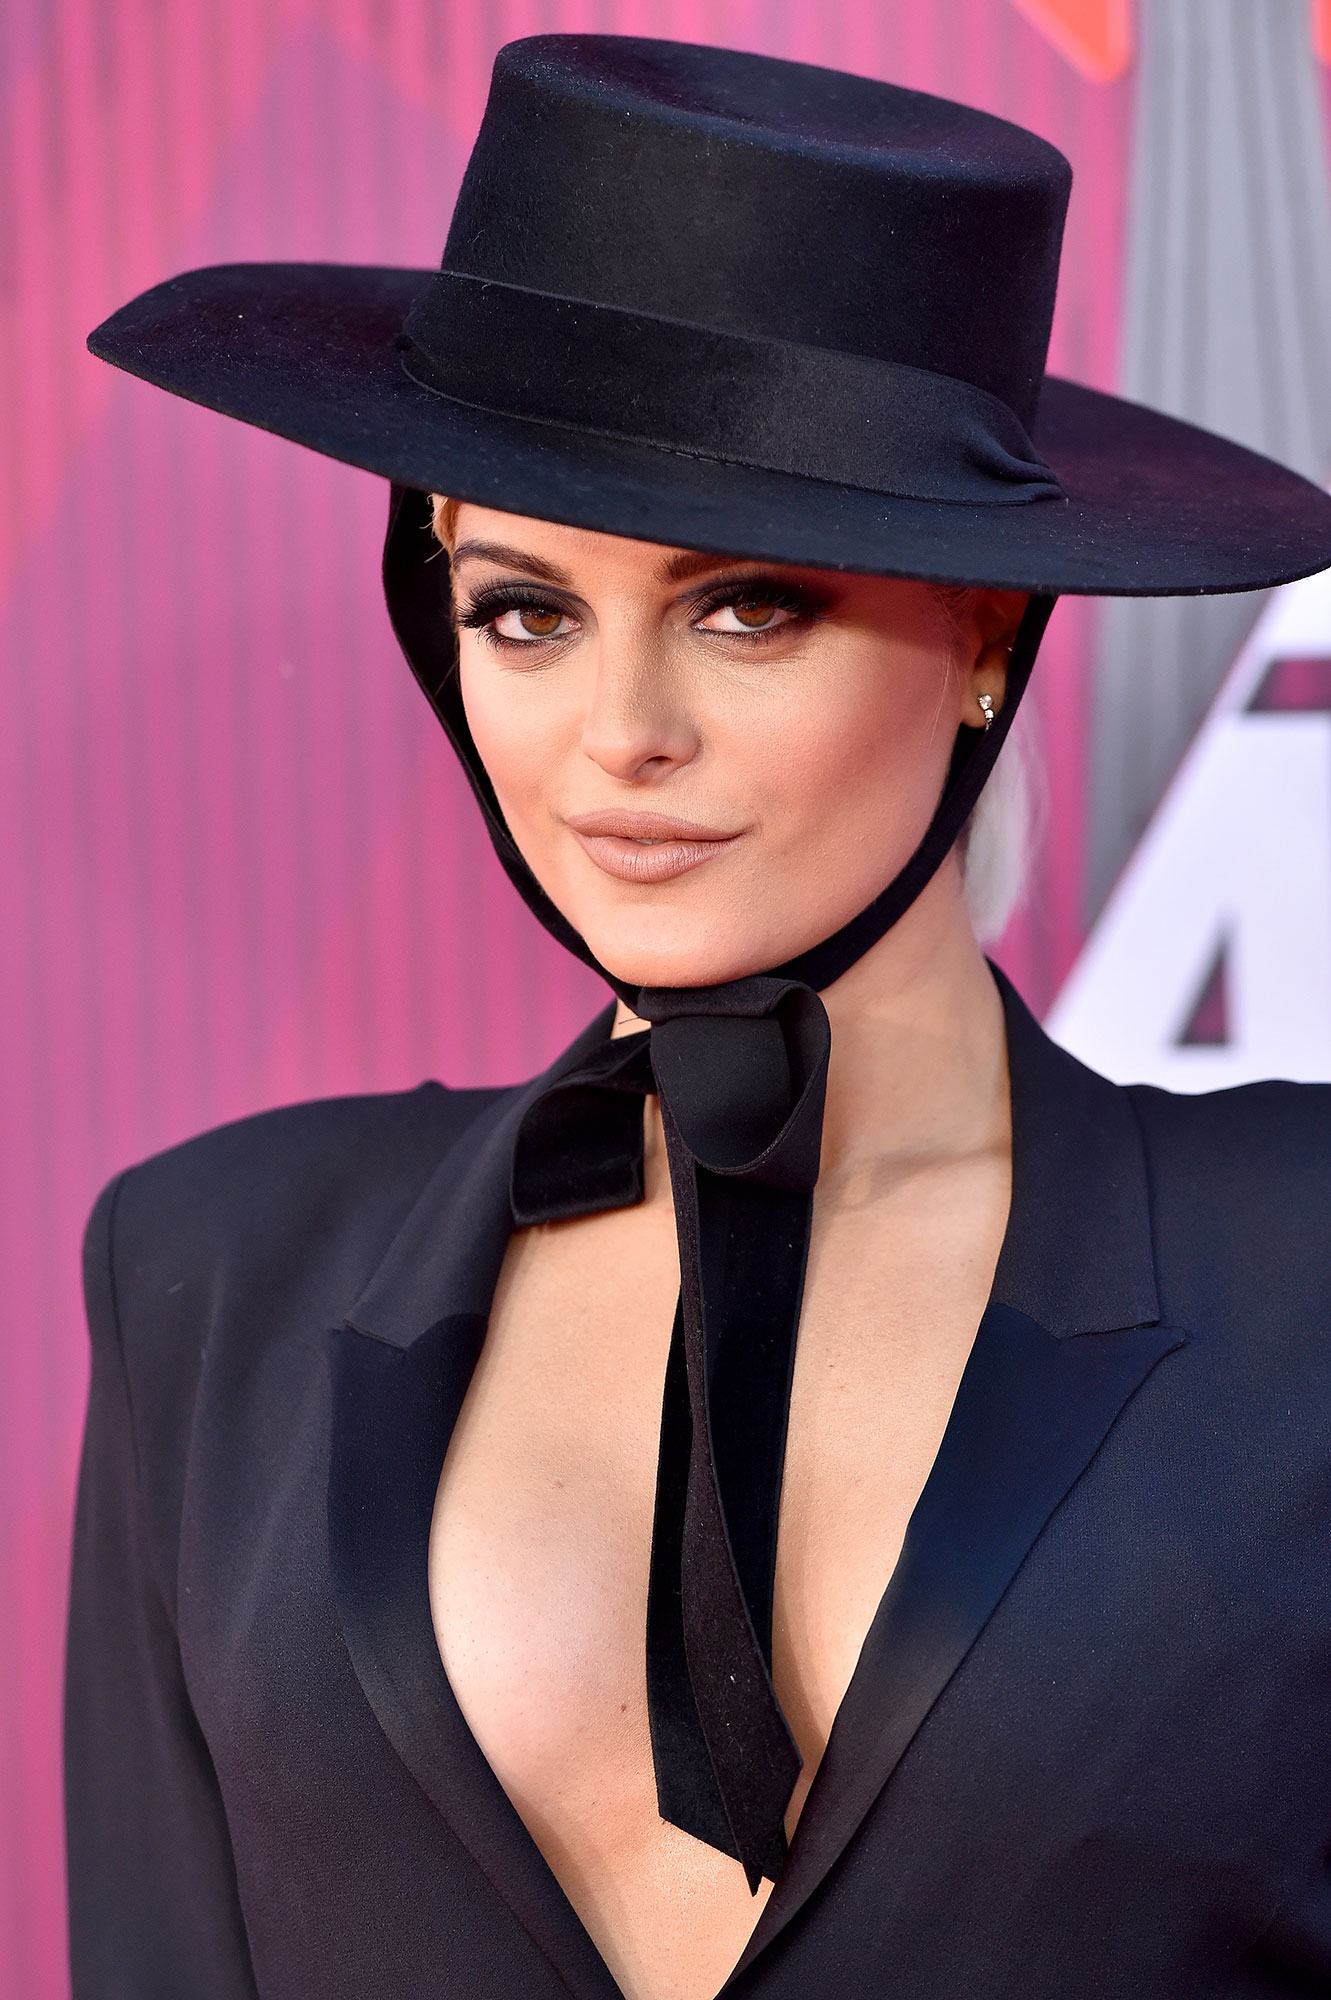 Bebe Rexha BiPolar - Bebe Rexha arrives at the 2019 iHeartRadio Music Awards which broadcasted live on FOX at Microsoft Theater on March 14, 2019 in Los Angeles, California.